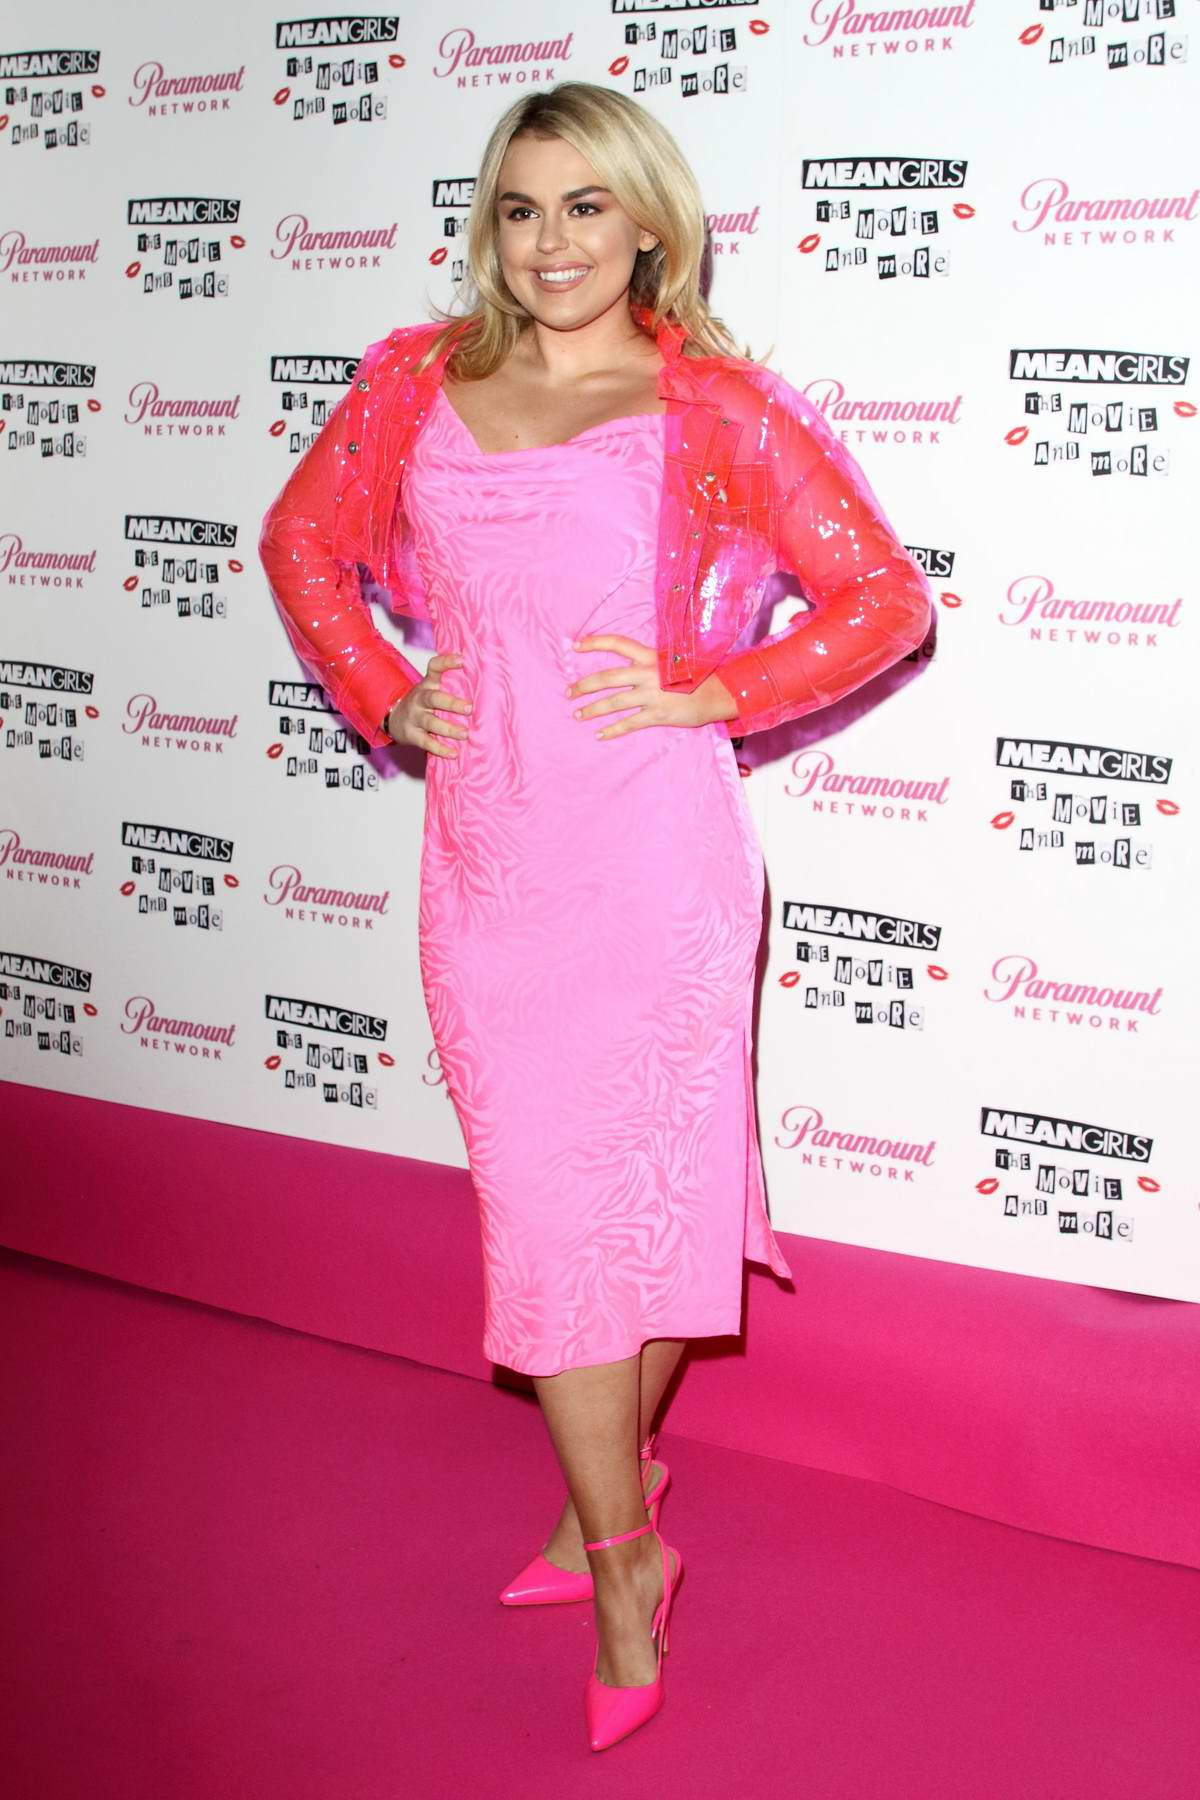 Tallia Storm attends a screening event of 'Mean Girls: The Movie and More' in London, UK